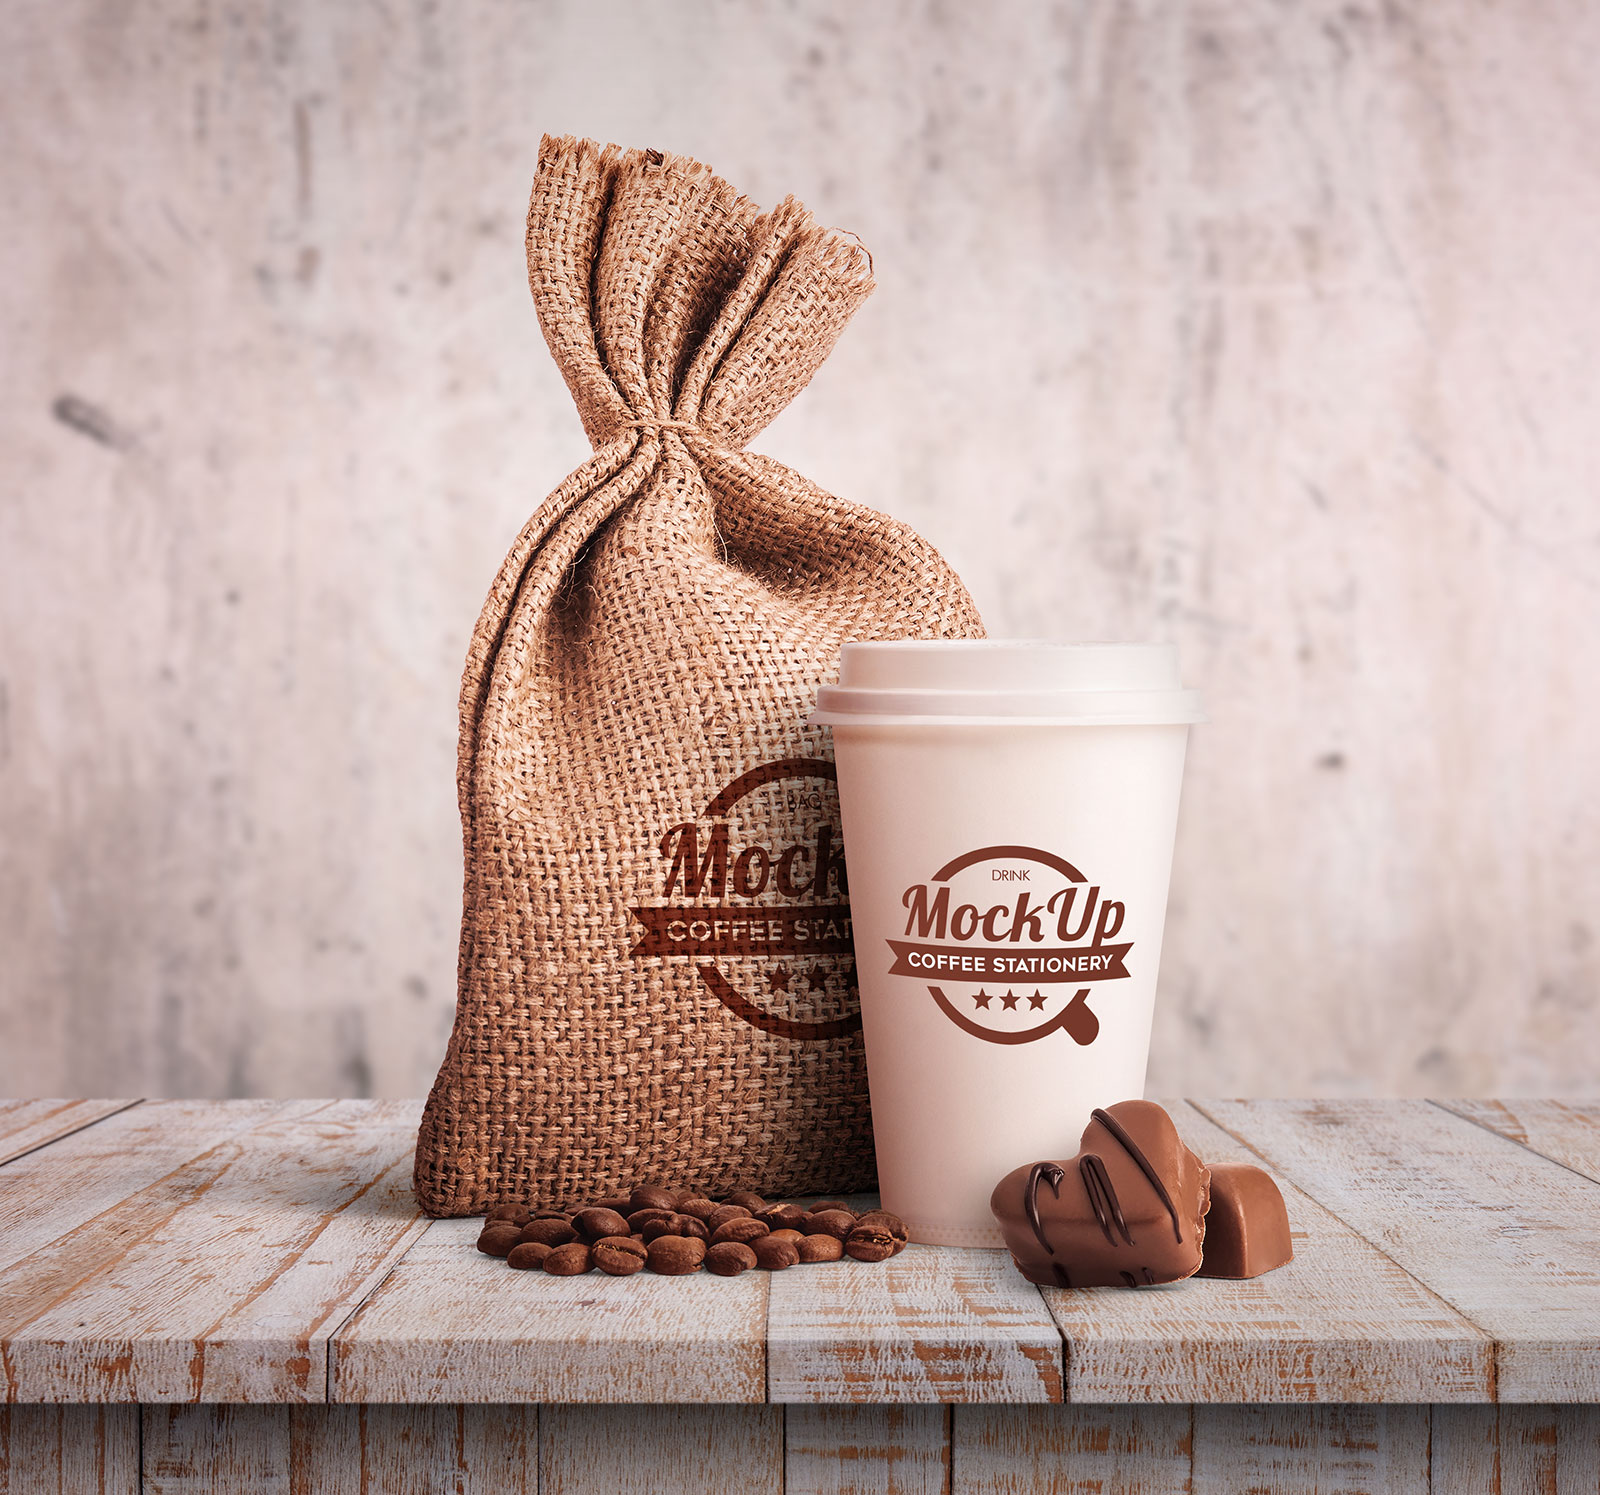 Free-Jute-Sacking-Bag-&-Coffee-Cup-Mockup-PSD